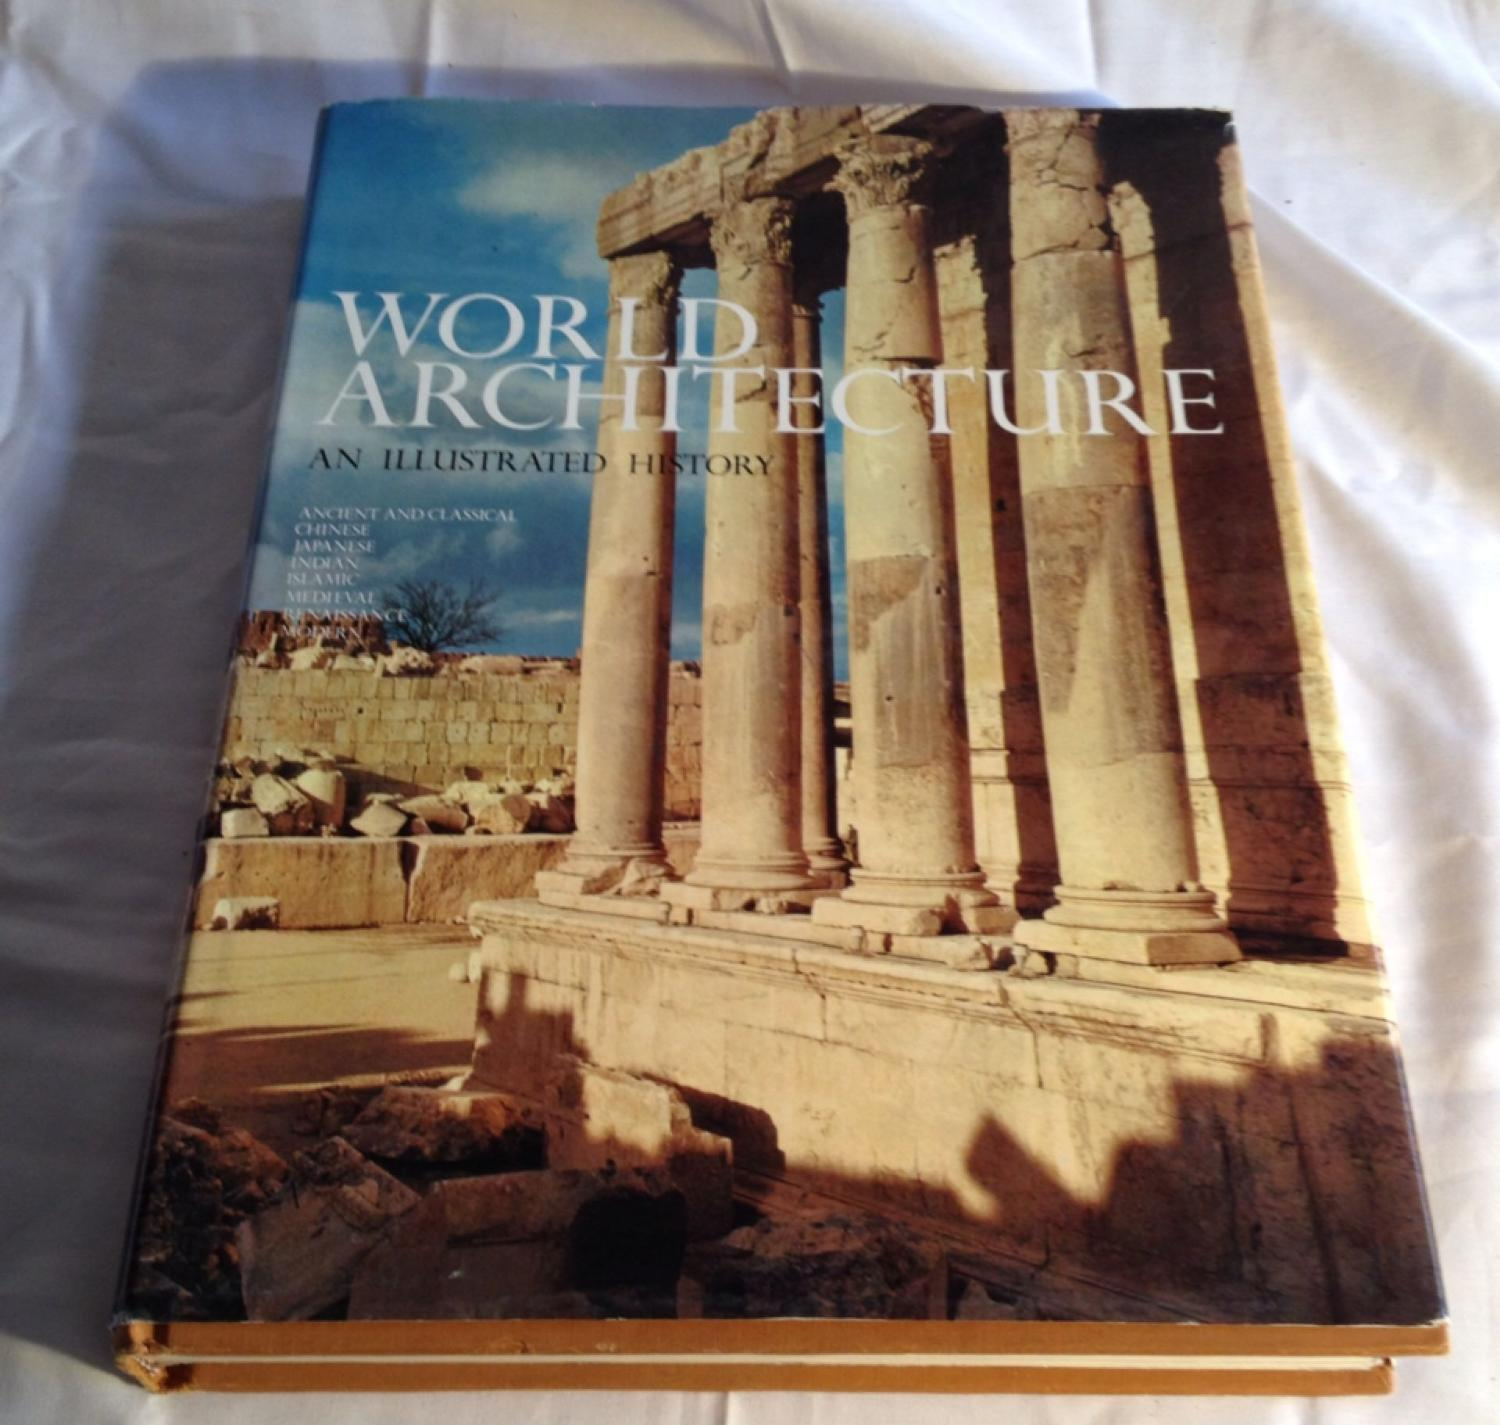 1976 World Architecture Book - An Illustrated History